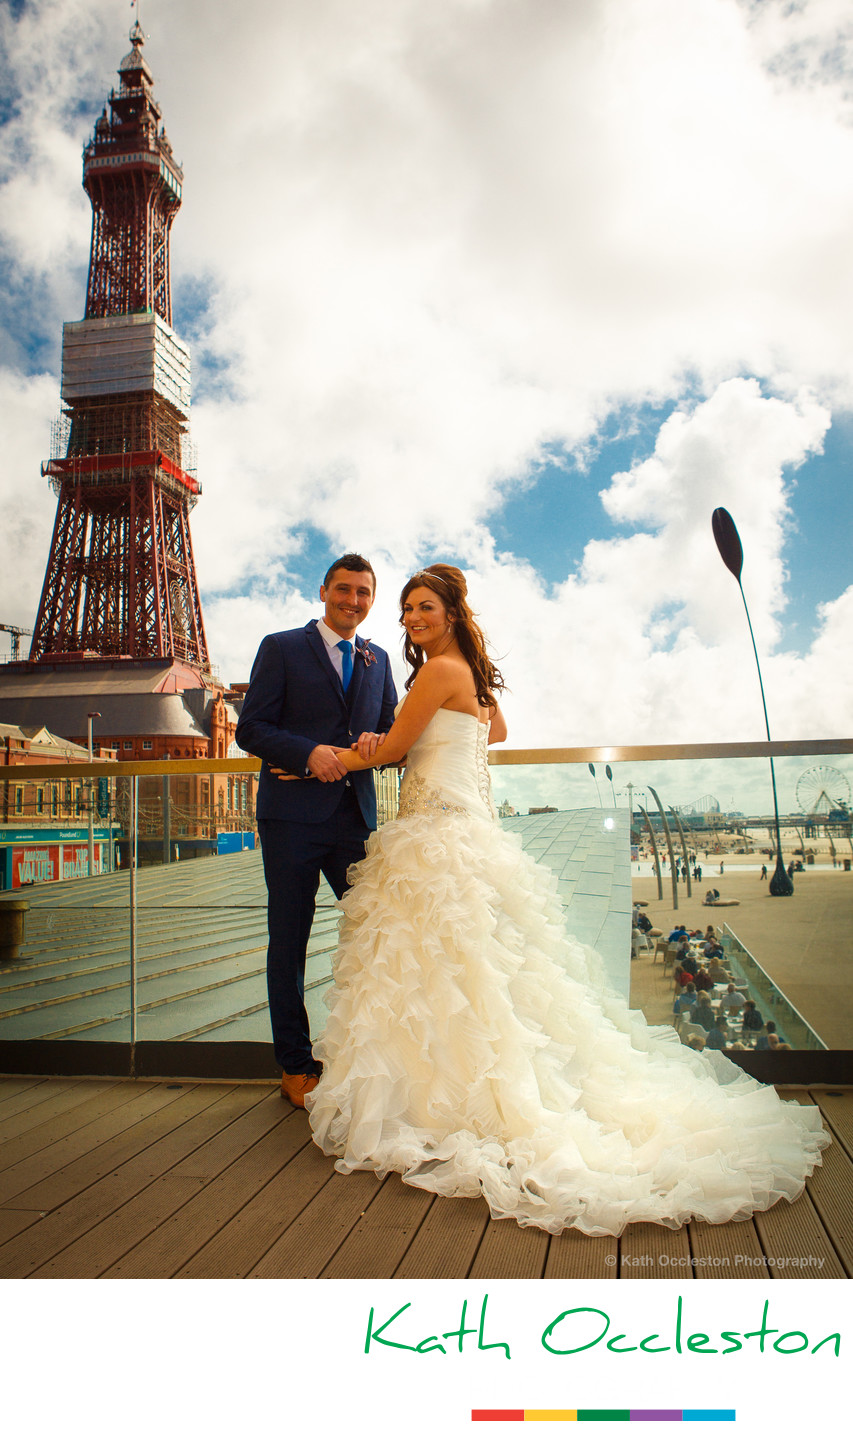 Bride & Groom on the balcony of the Wedding Chapel, Blackpool